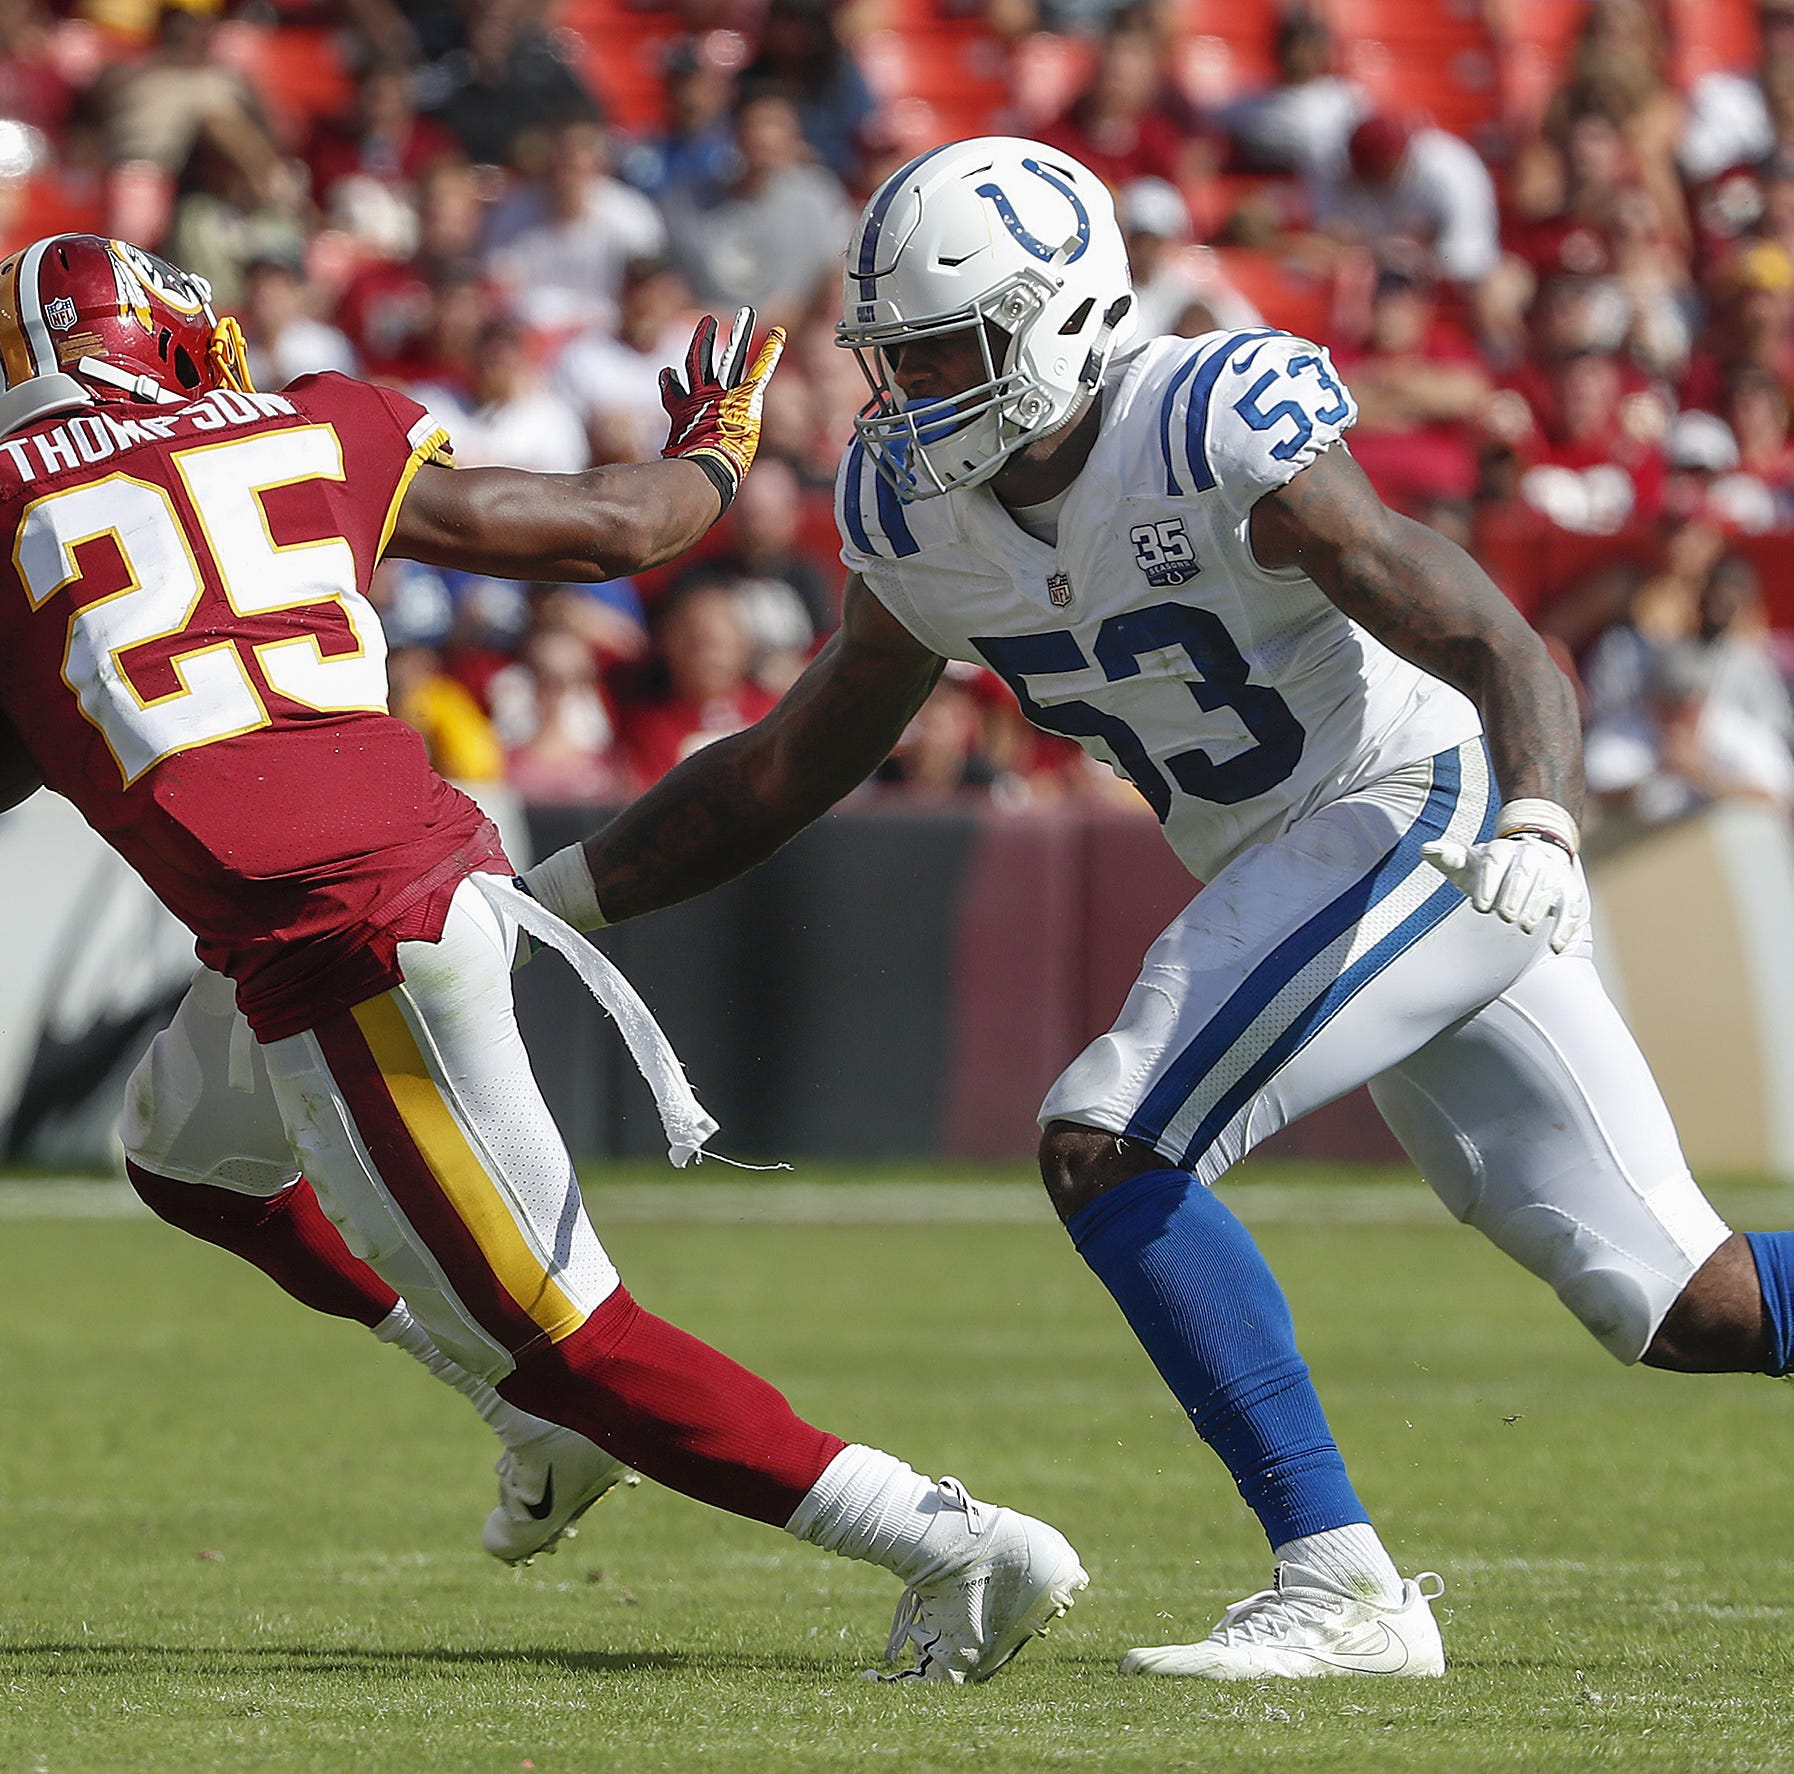 Thumbs up, thumbs down: Darius Leonard, Margus Hunt, Jabaal Sheard help D dominate